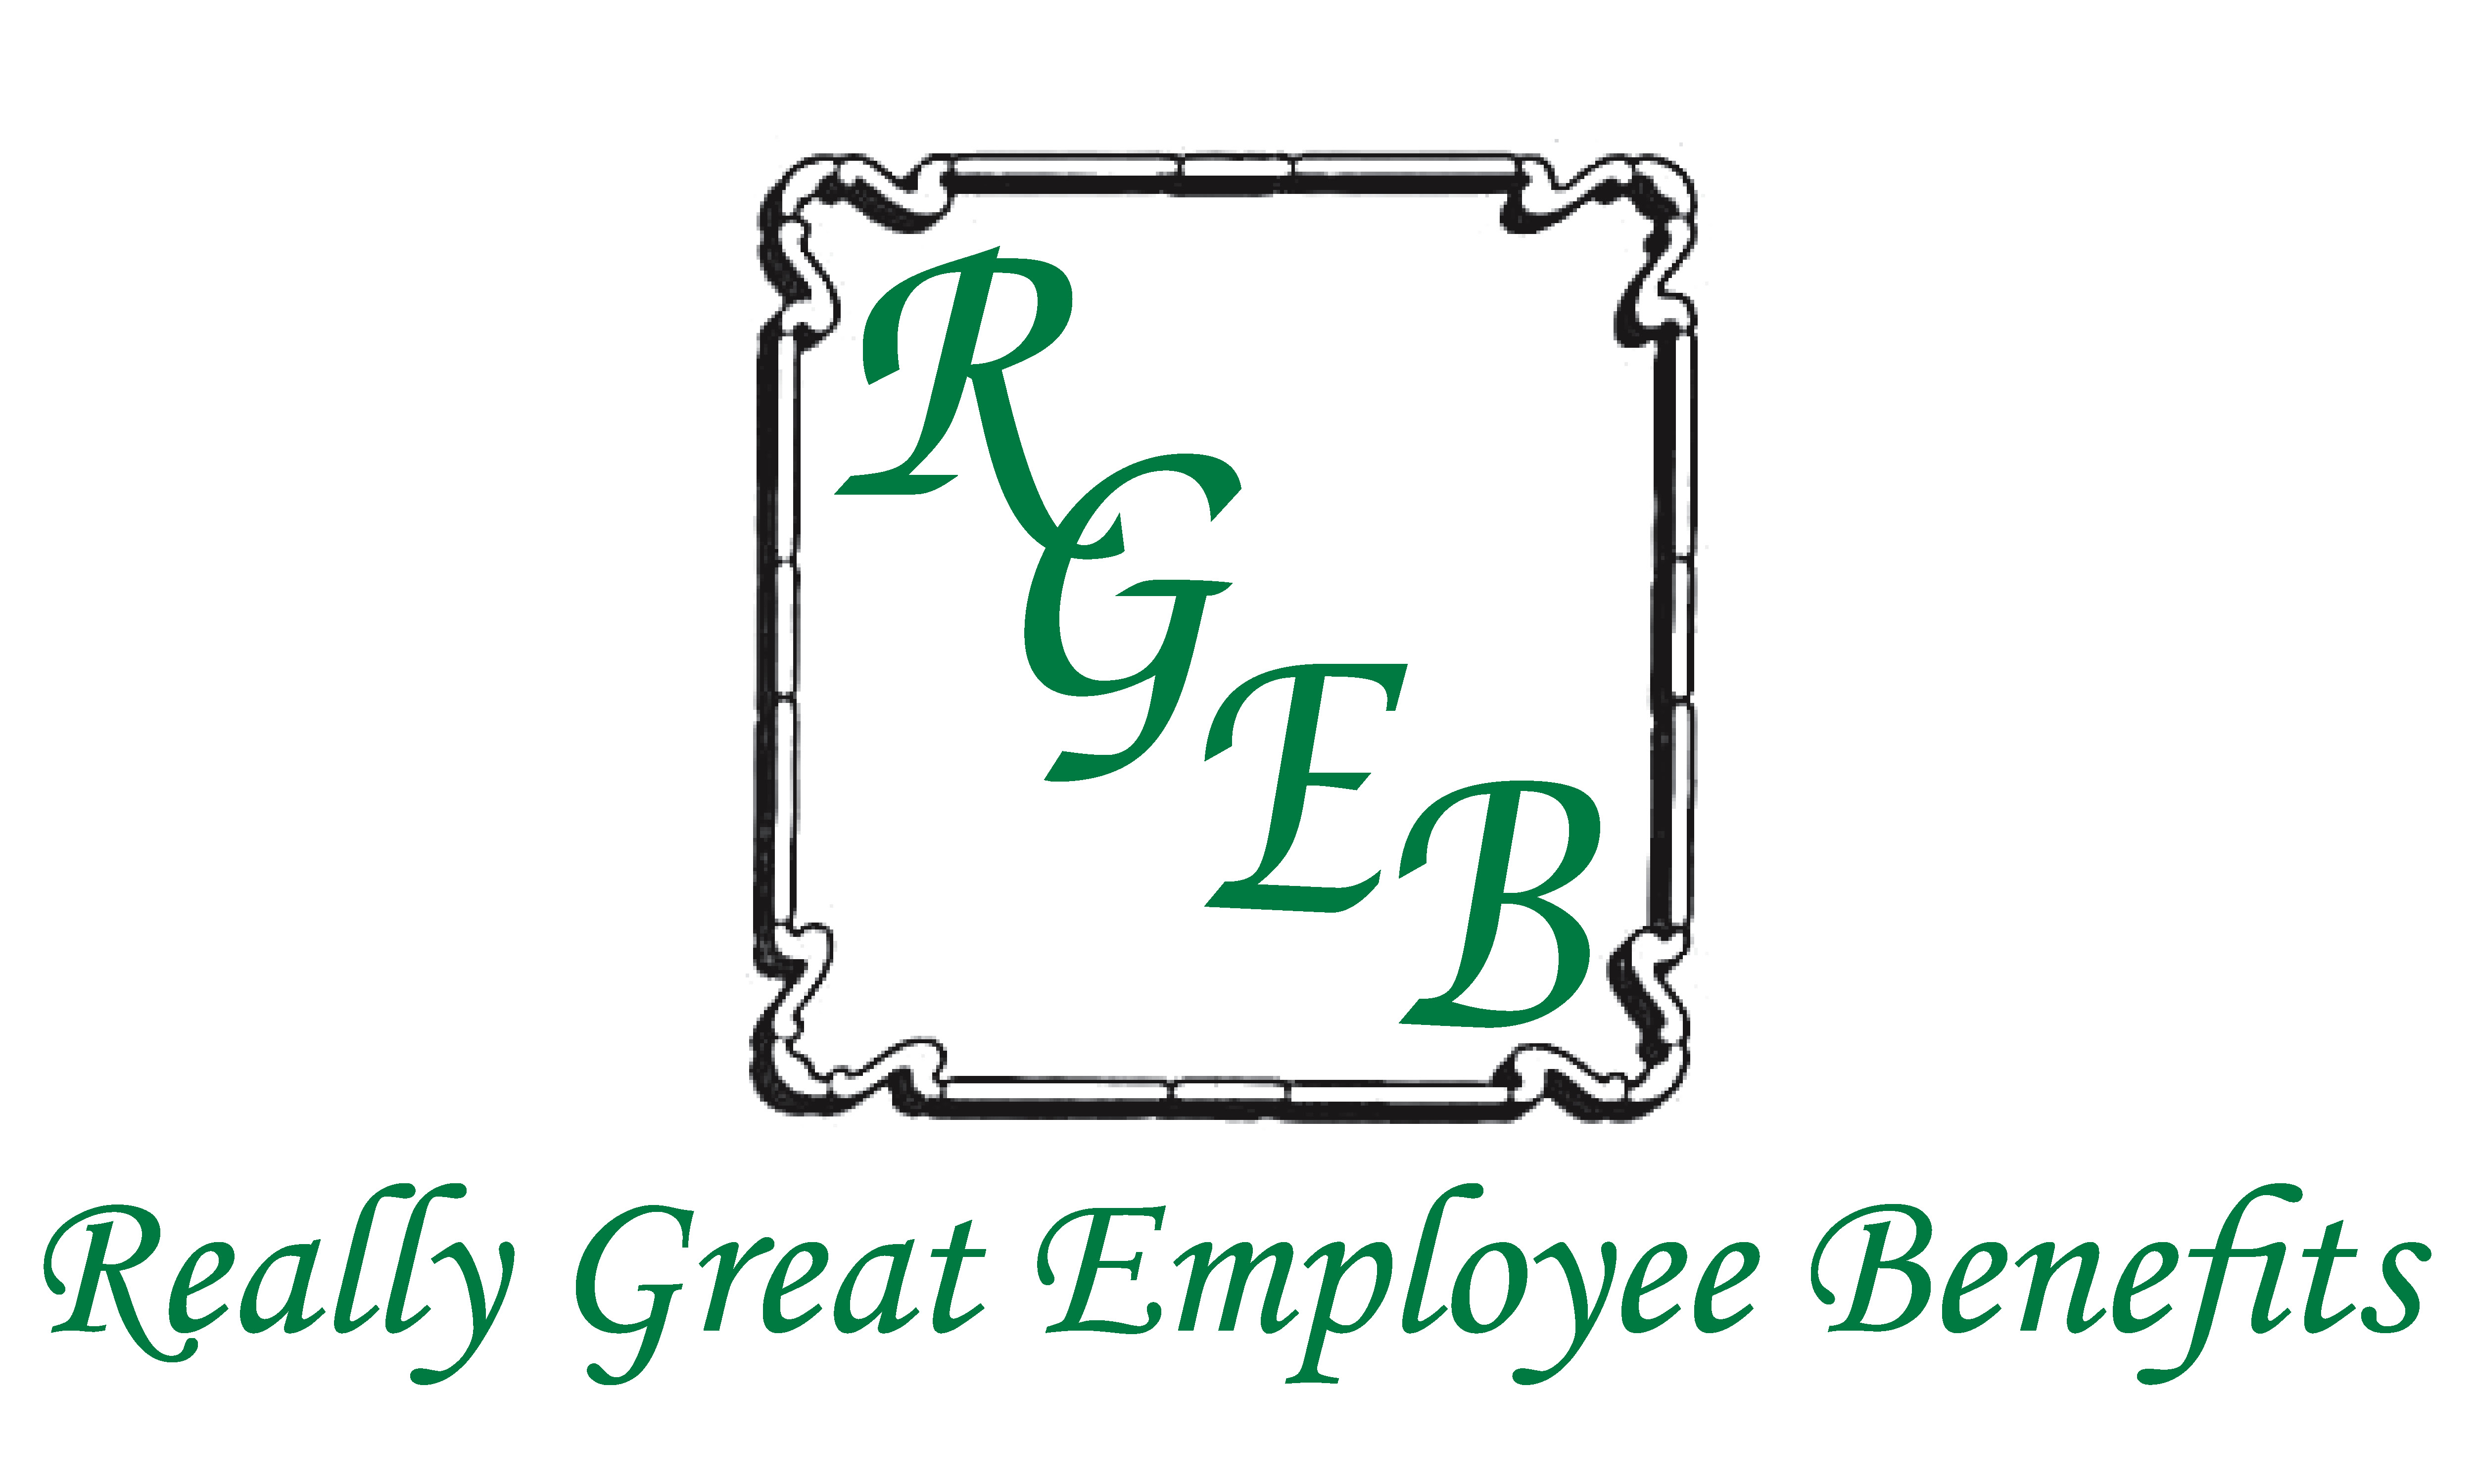 Really Great Employee Benefits - The employee benefits broker and group health insurance advisor in Canoga Park